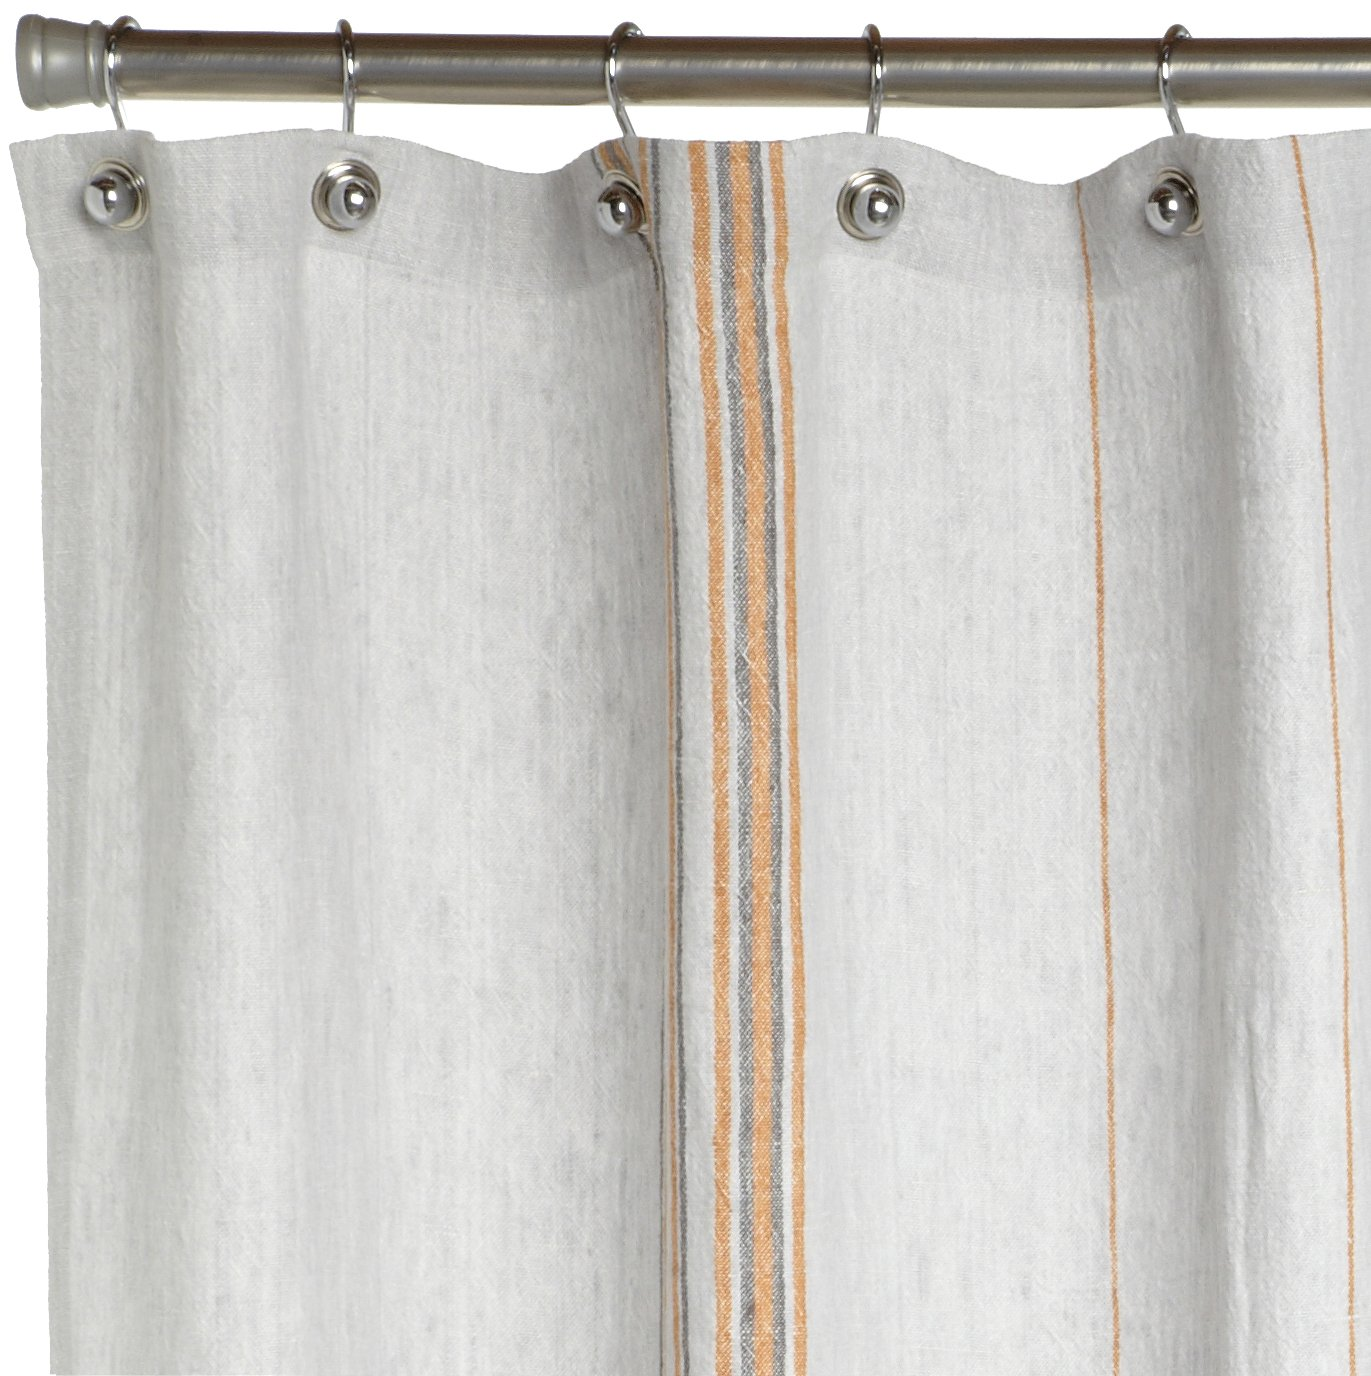 Amazoncom Coyuchi Rustic Linen Shower Curtain Pewter With - White linen shower curtain